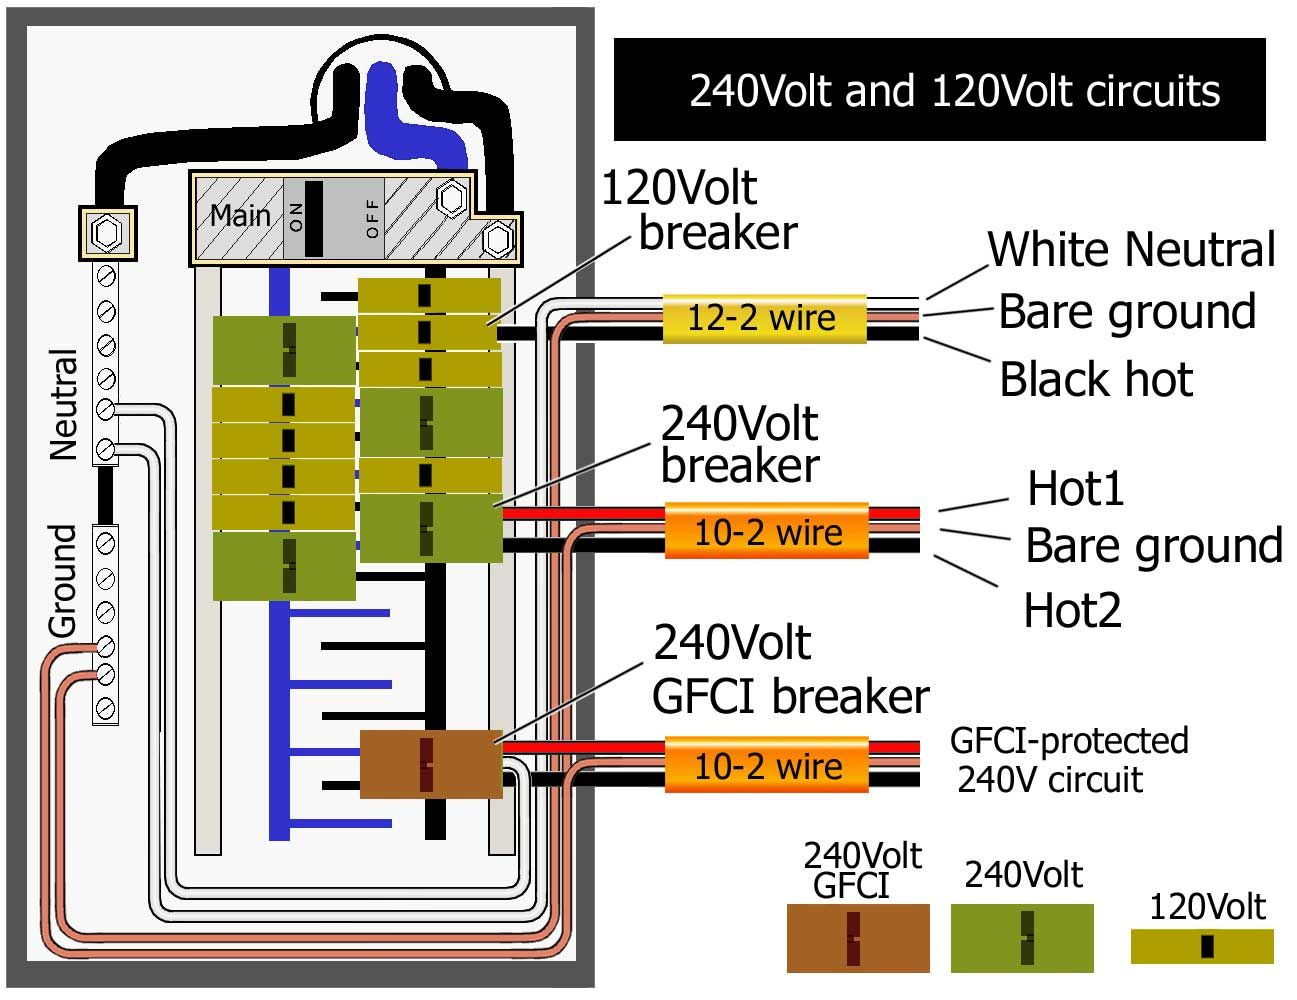 #Gfci Outlet Wiring Diagram #ElectricalEngineering #ECE